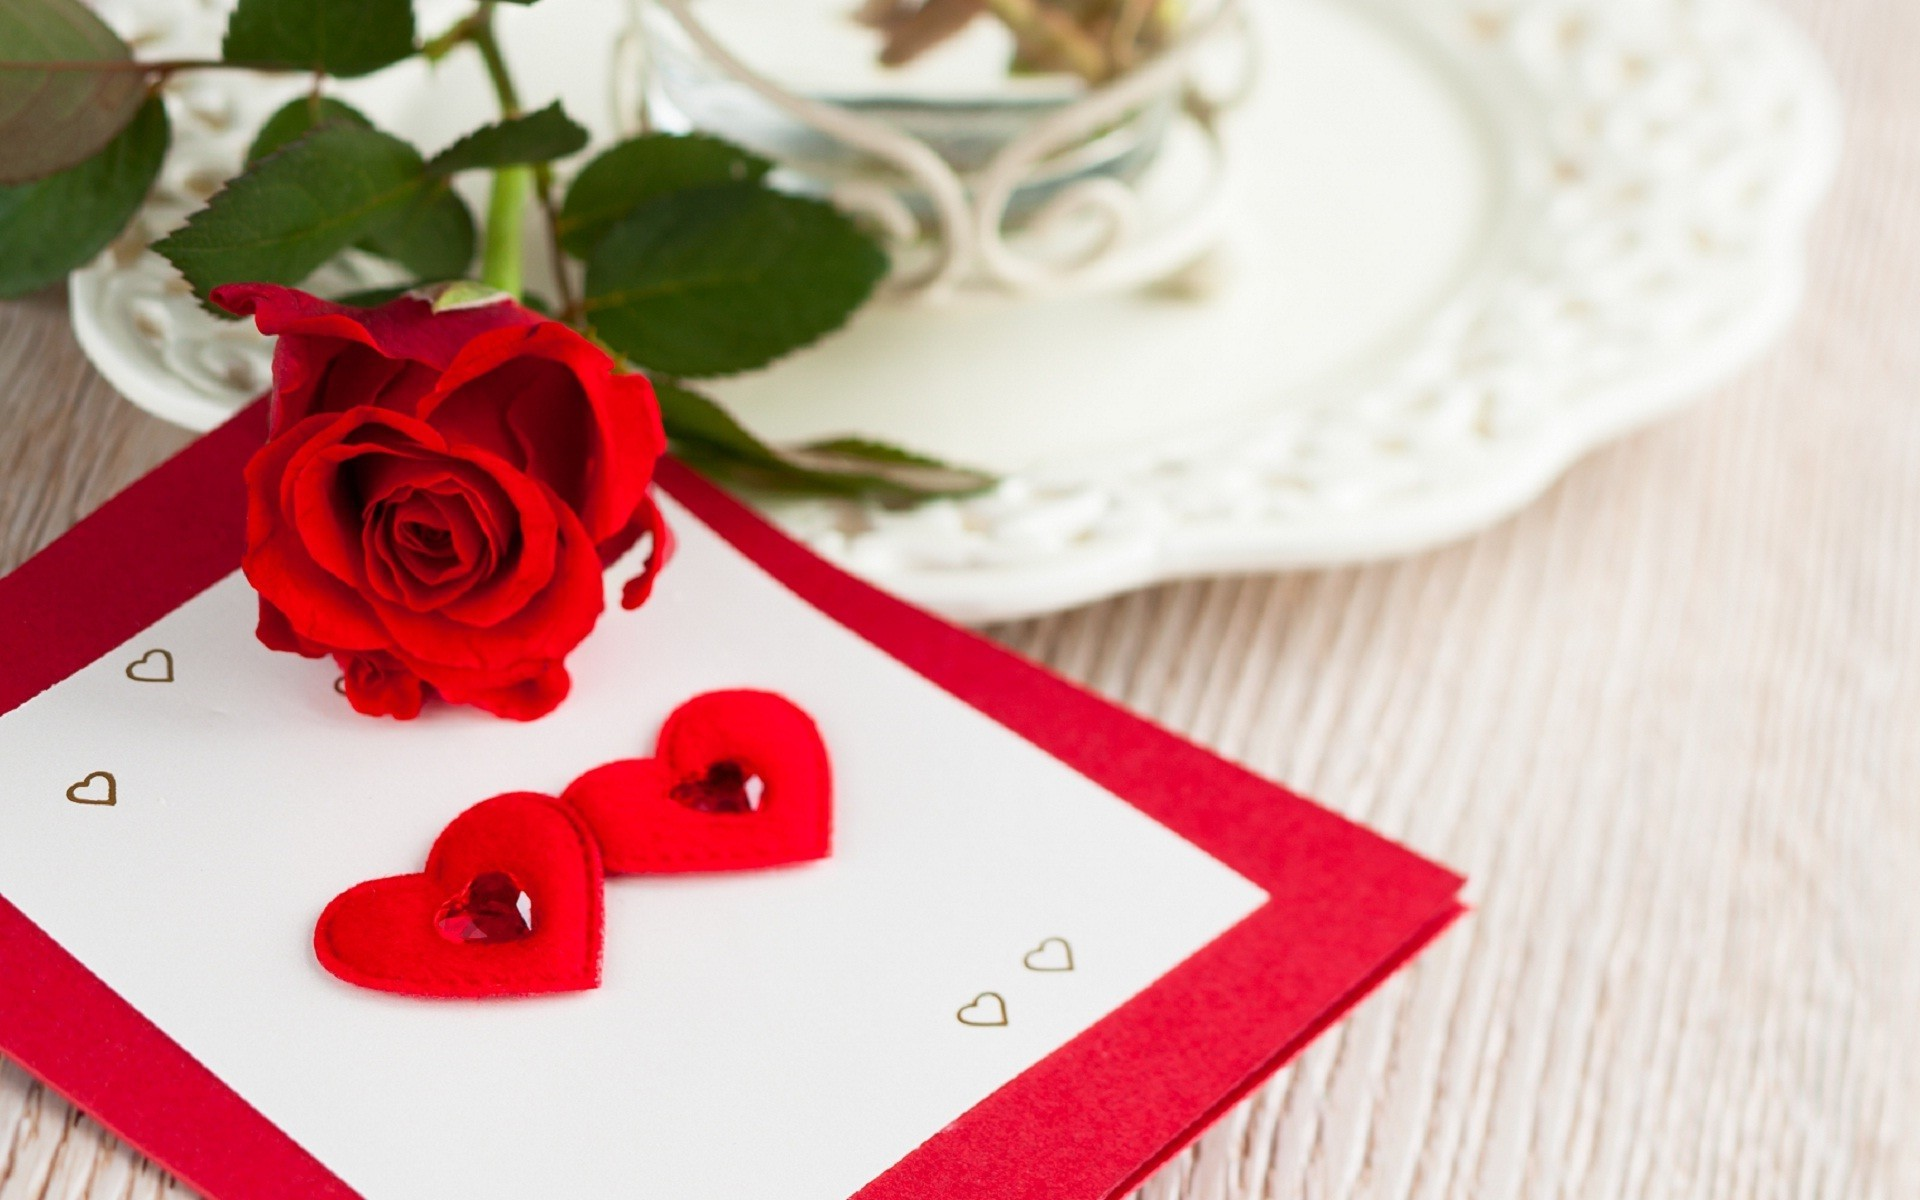 1920x1200 A Letter Images Love Image Valid Save Best S Love Letter Wallpaper Download 1920x1200 Wallpaper Teahub Io